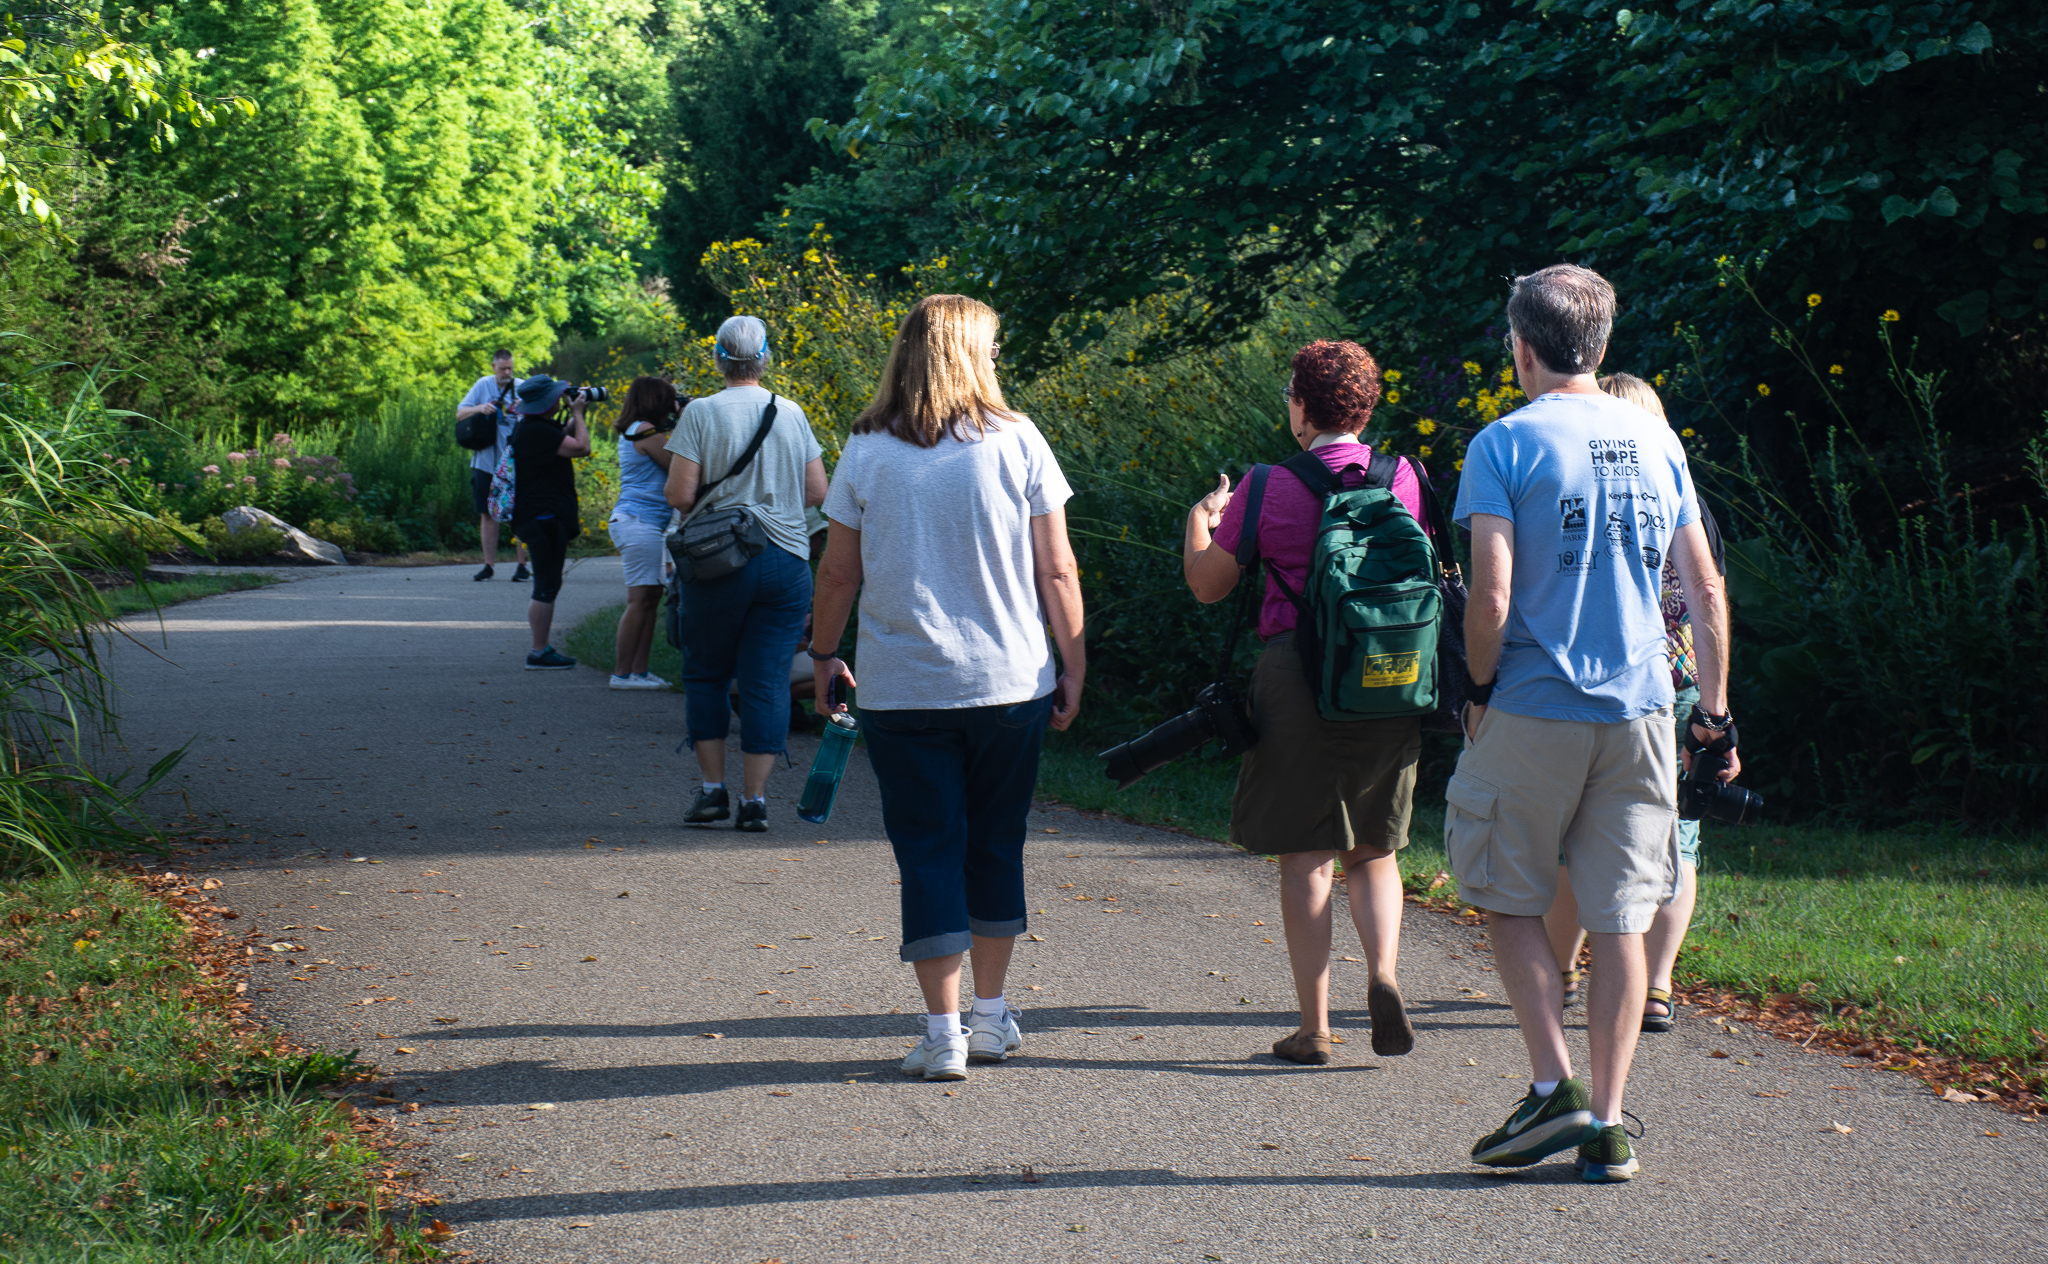 A group of adults walks down a paved trail. With cameras and water bottles in hand, everyone is prepared to take a snapshot during this sunny afternoon.